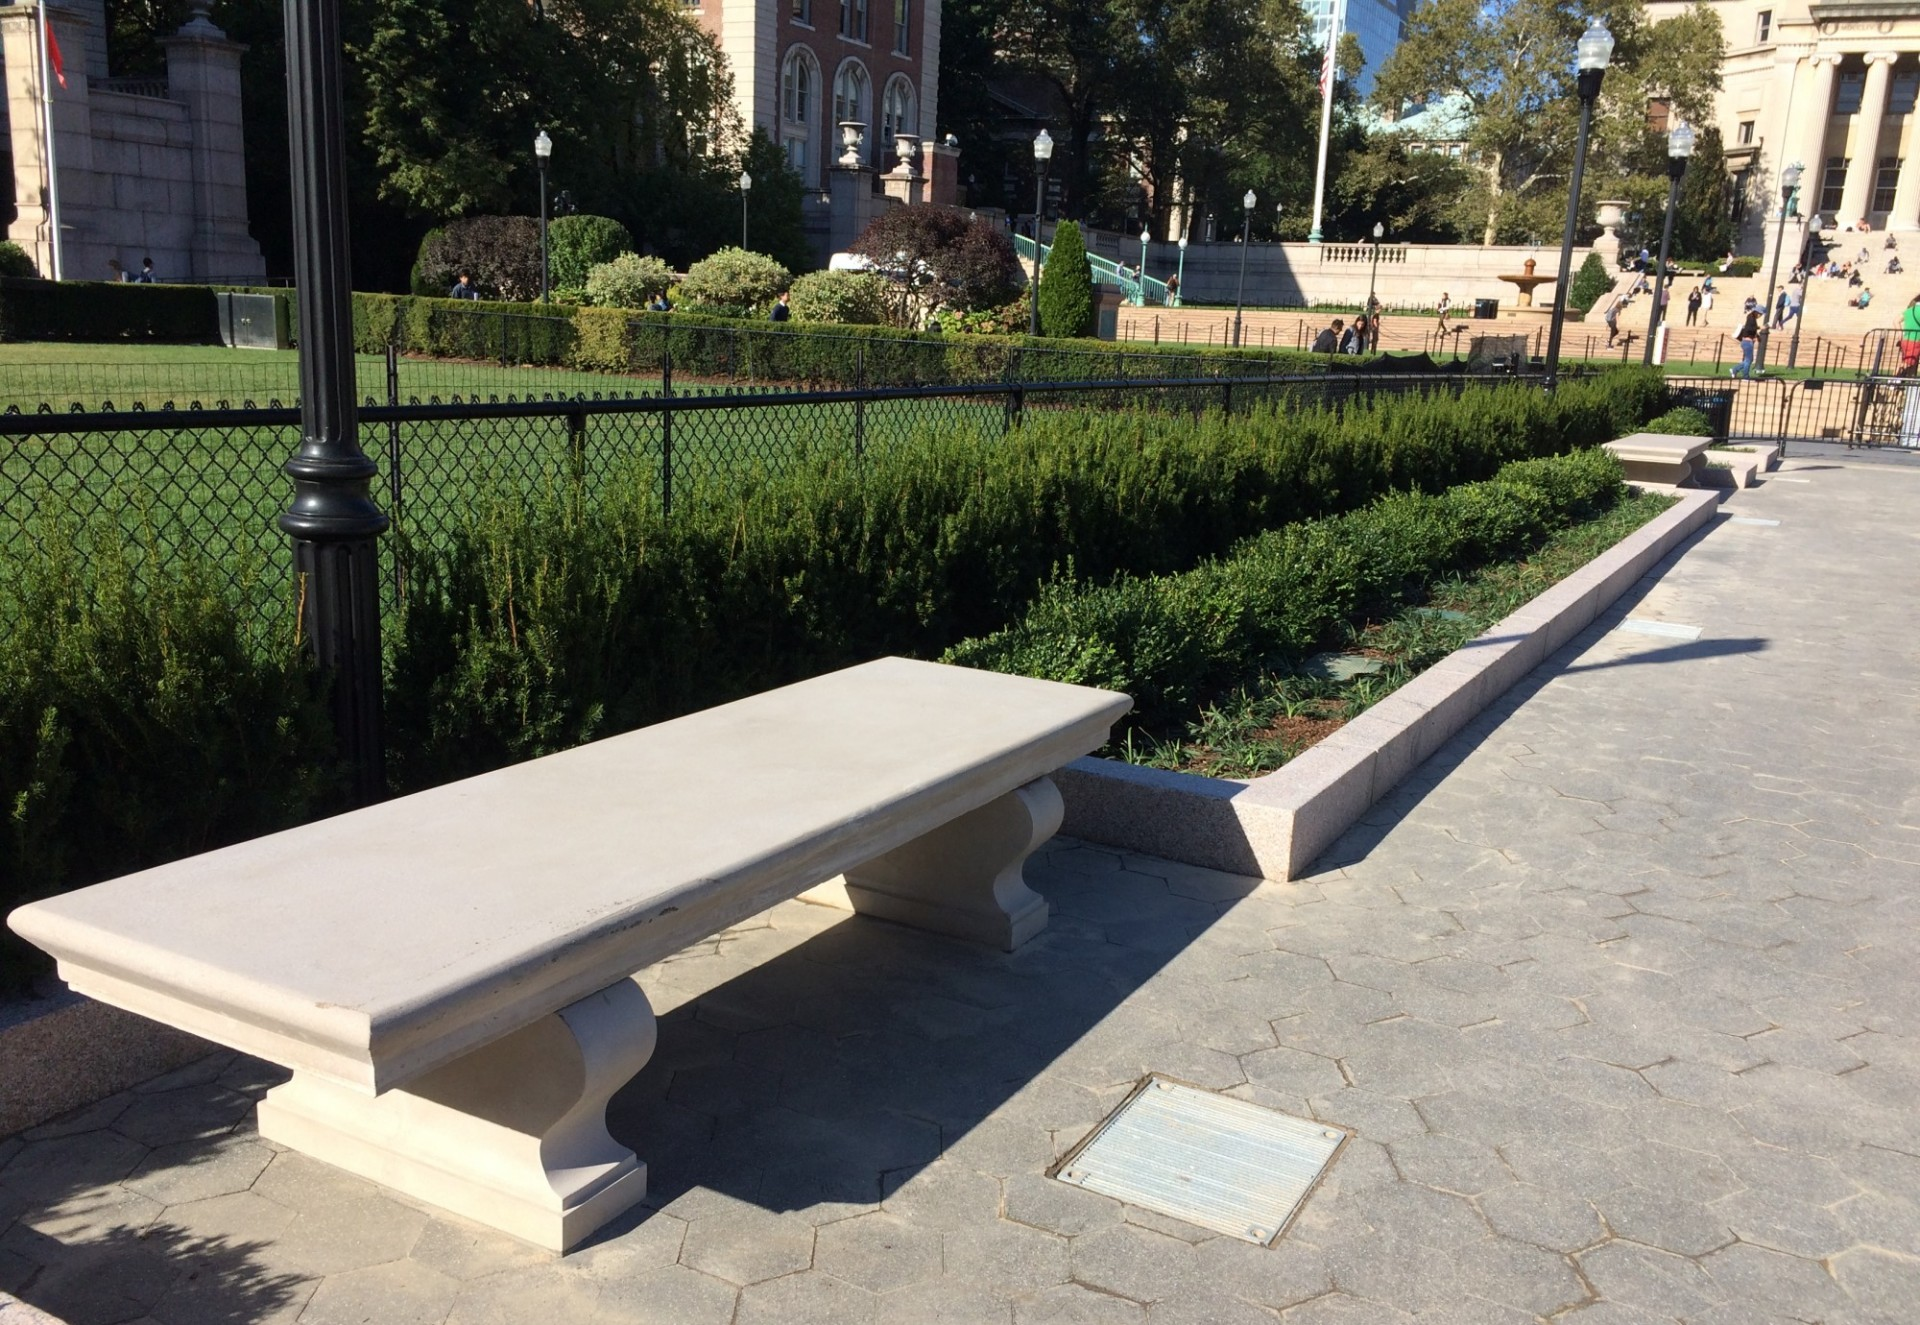 One of eight new benches installed along the perimeter of Butler Lawn (Photograph from October 3, 2017)